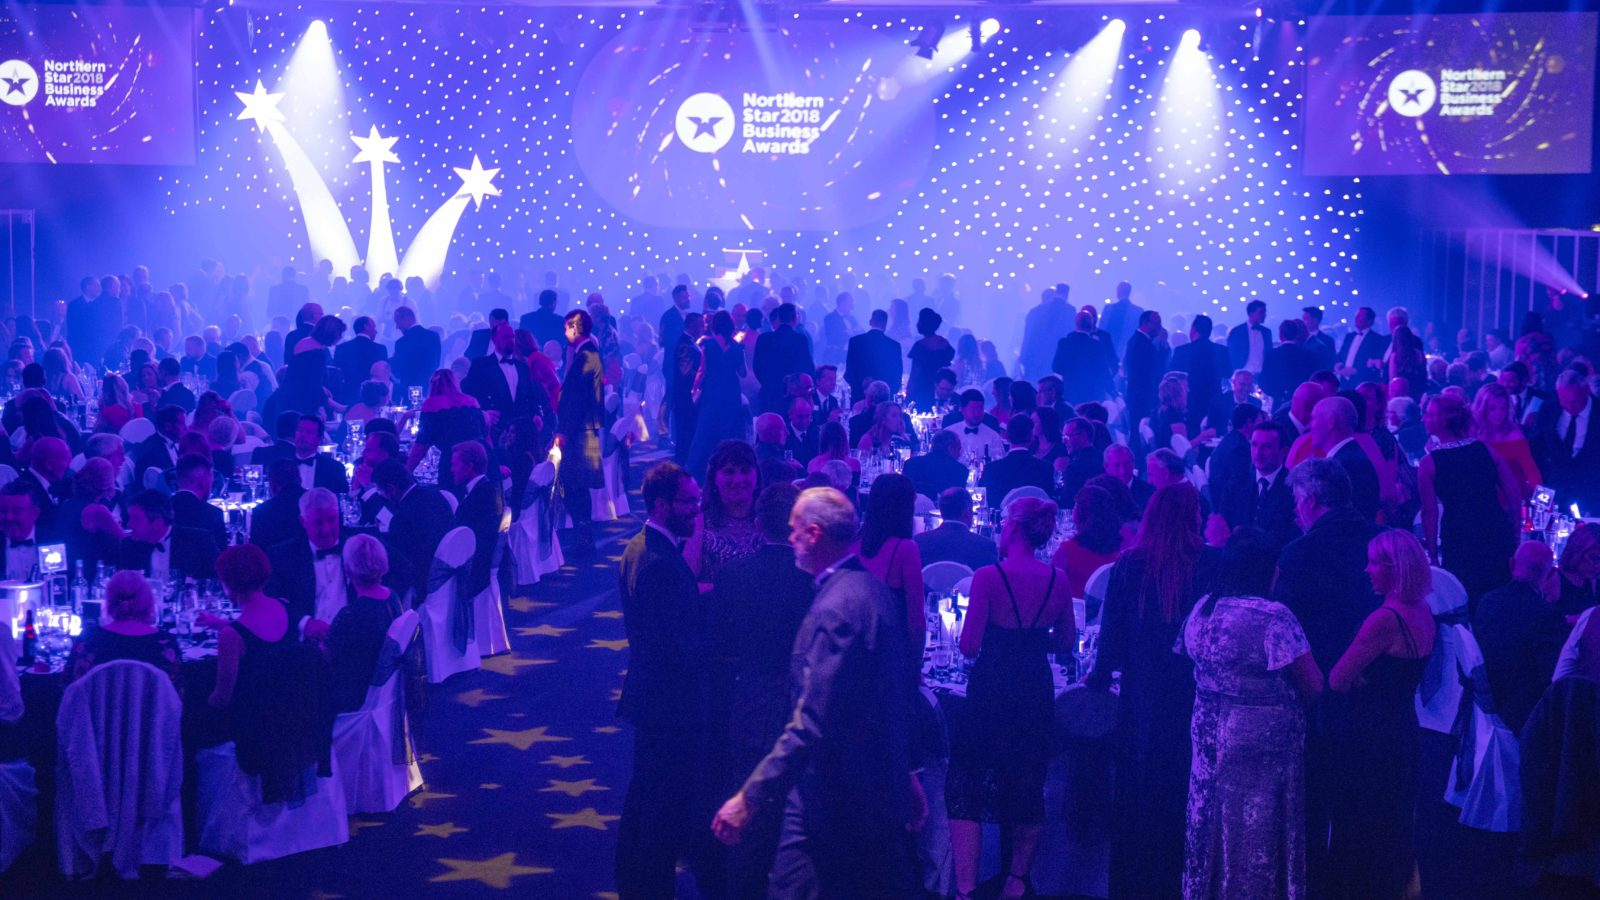 Northern star business awards 2018 4